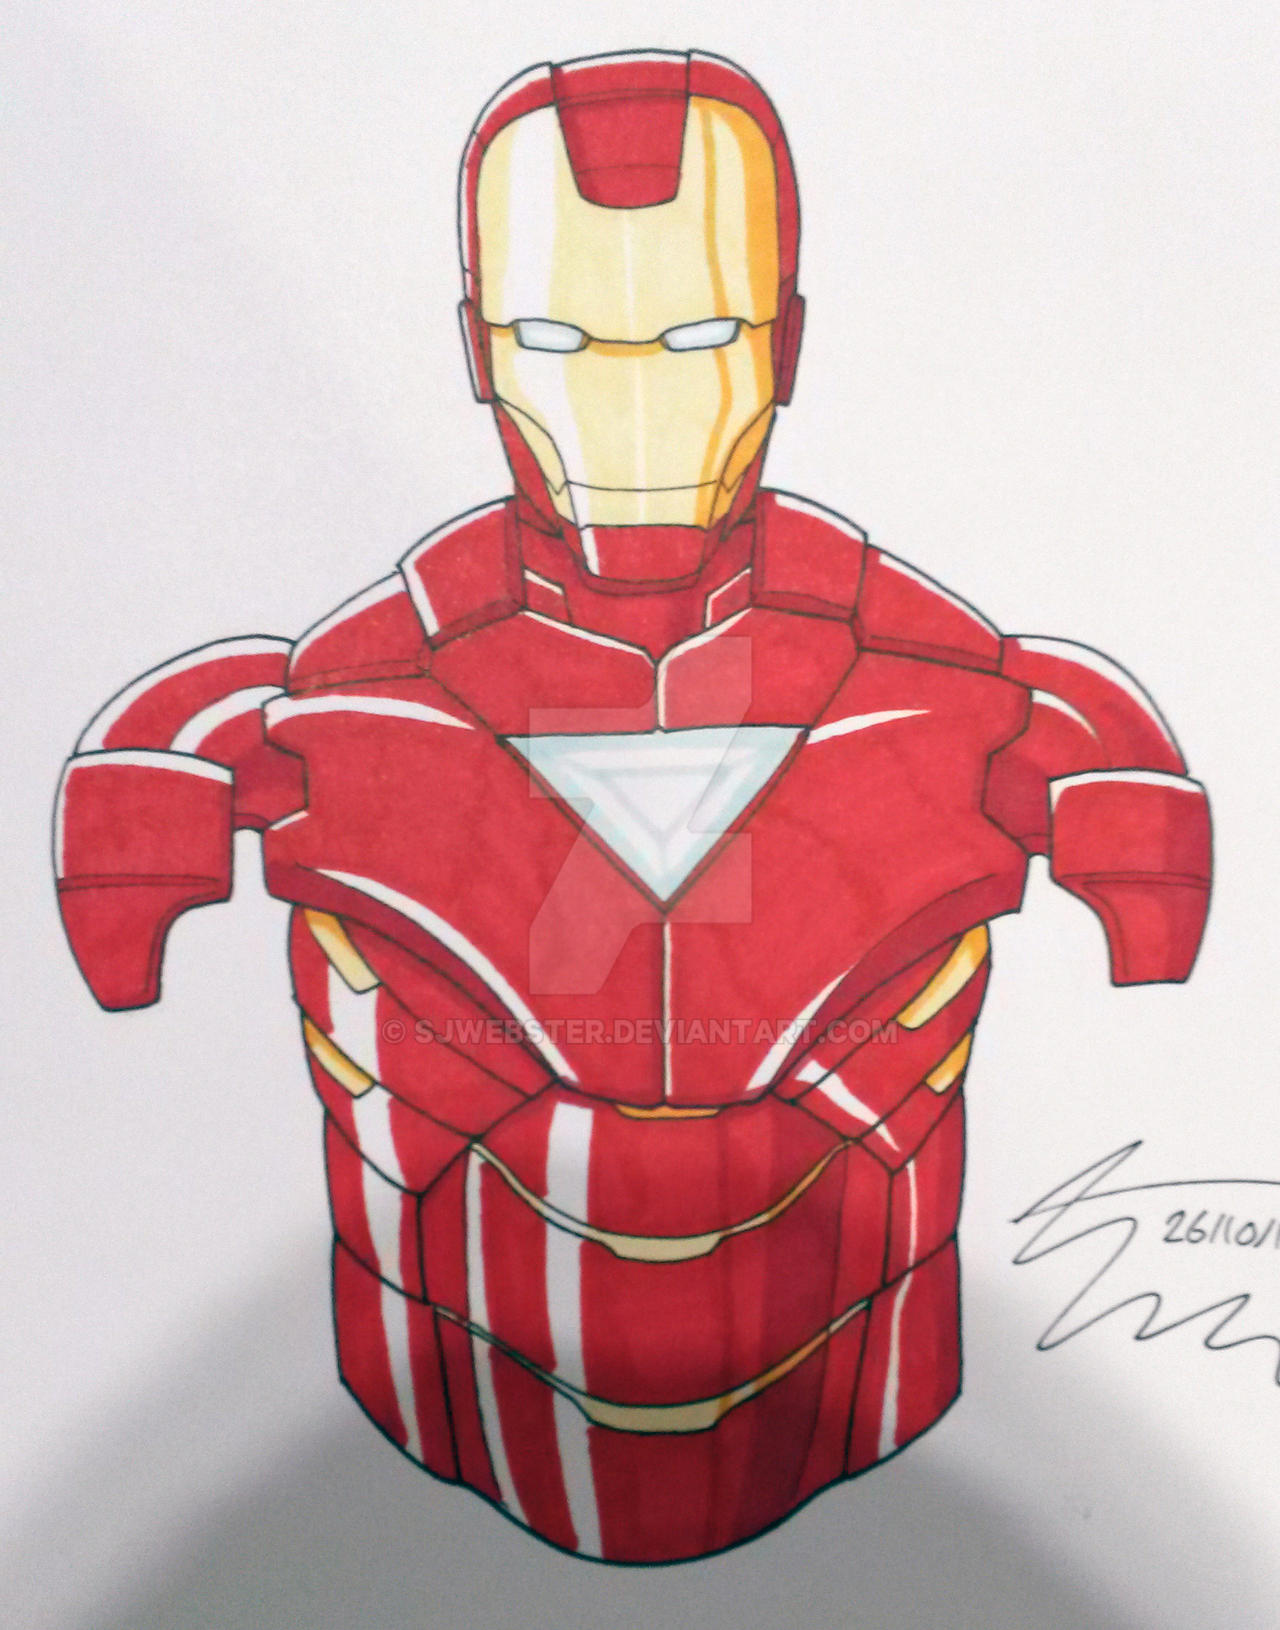 Iron Man by SJWebster